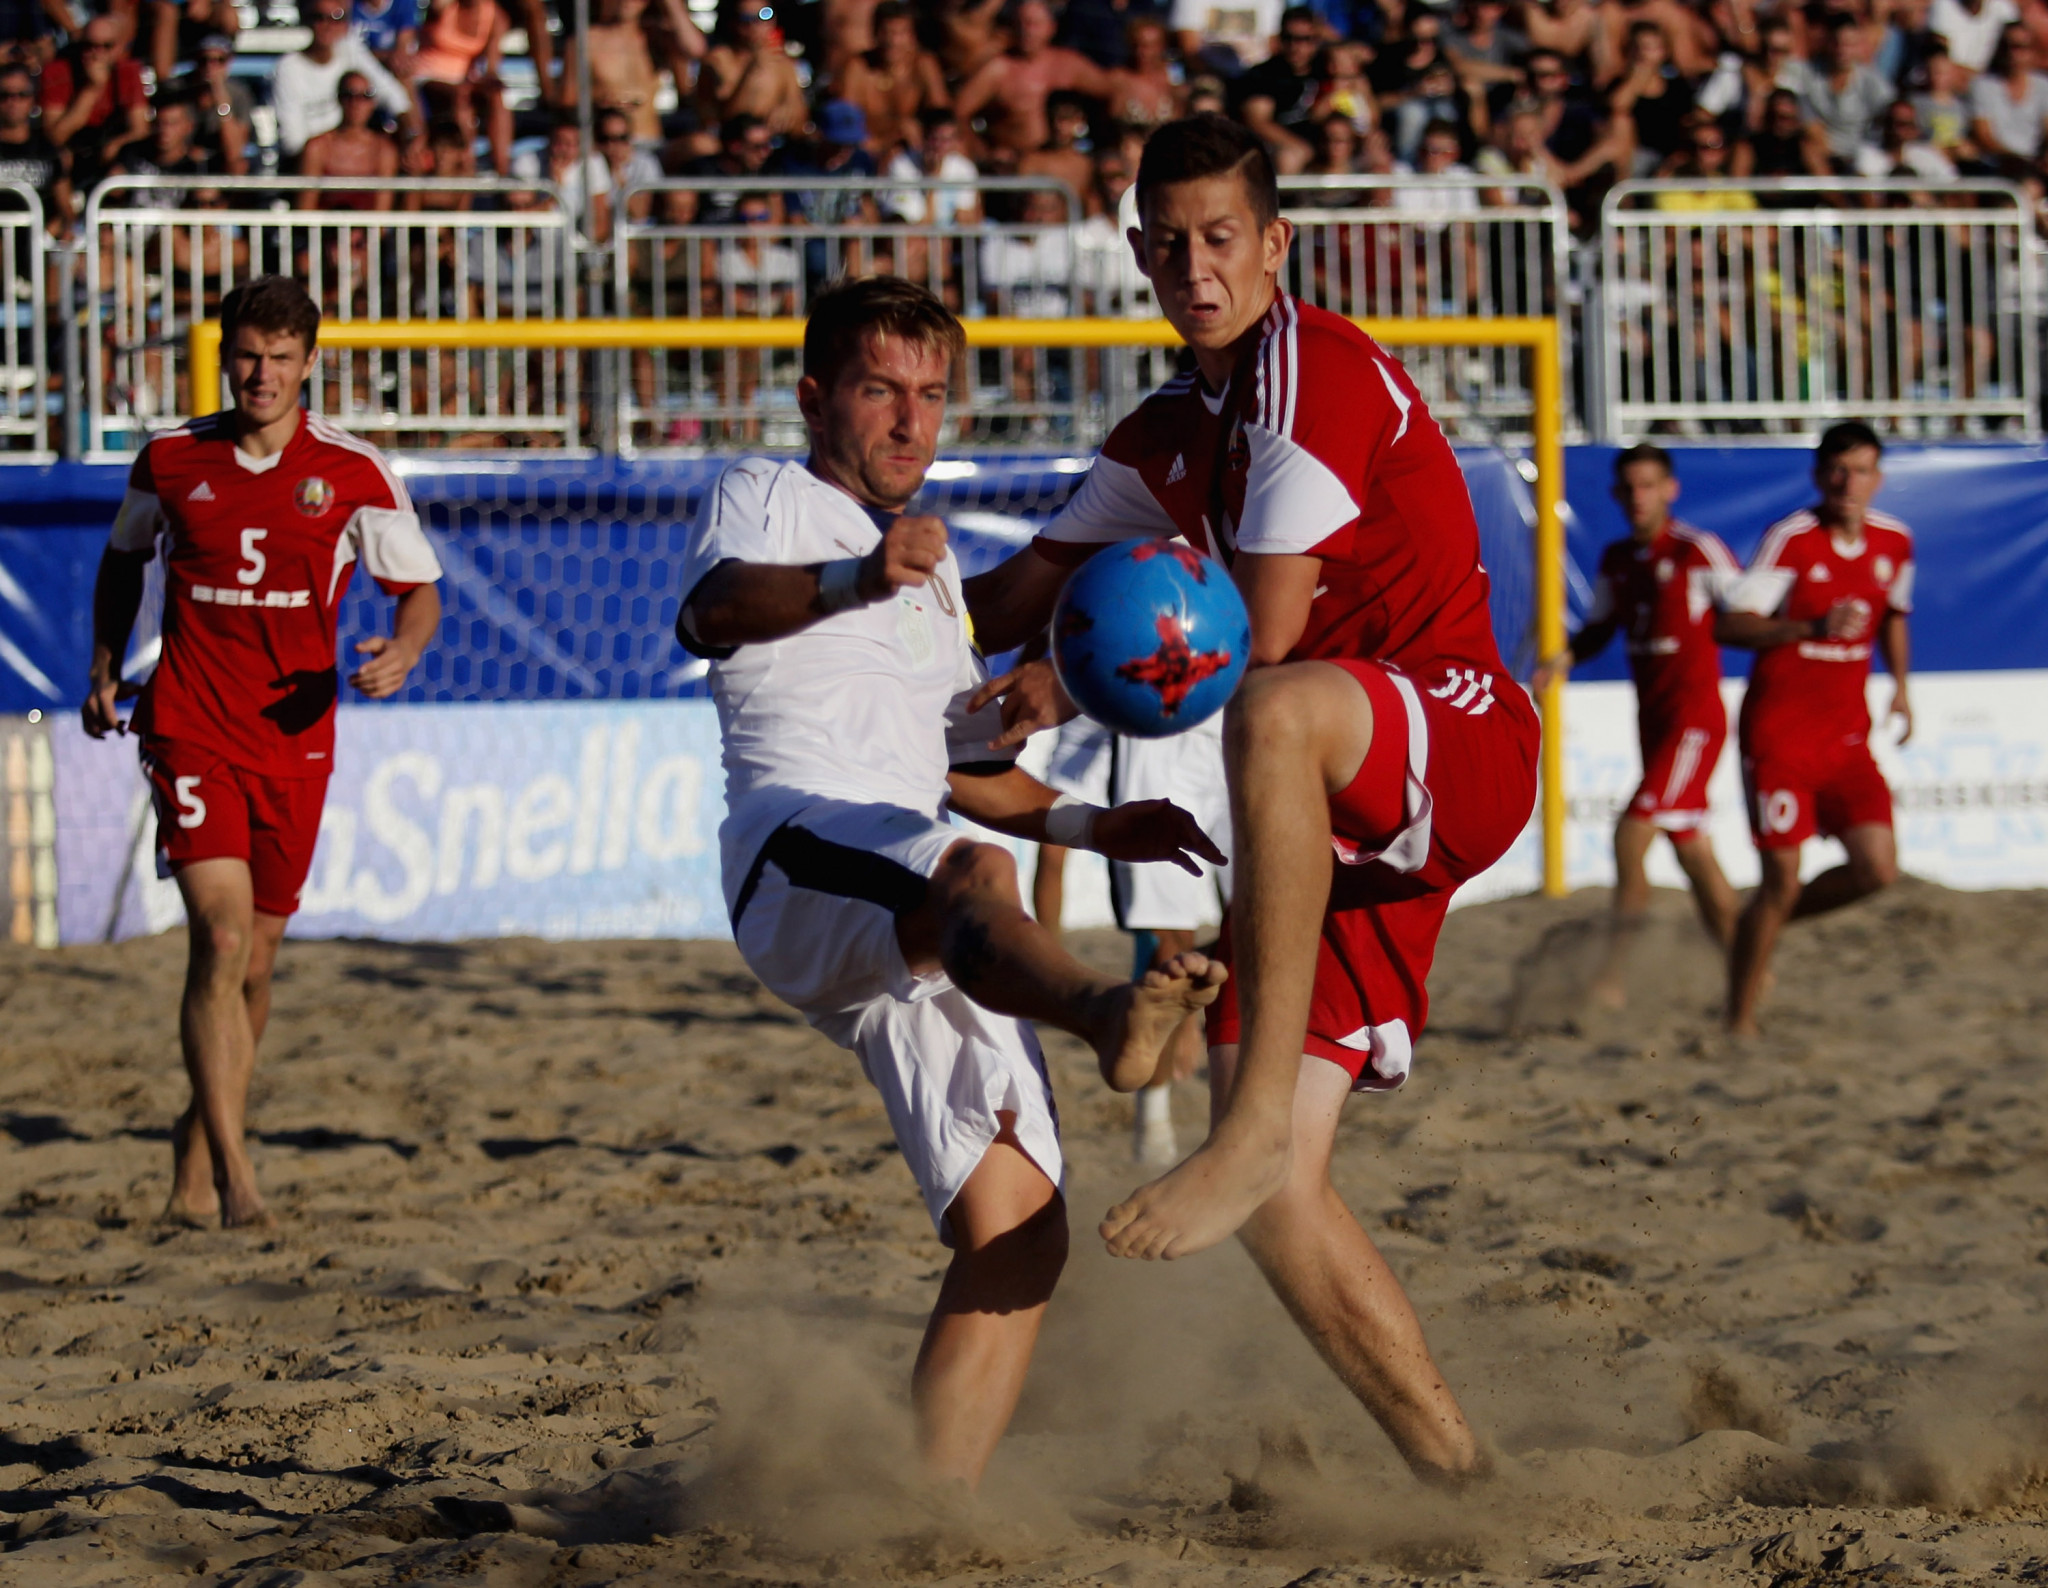 Draw made for Minsk 2019 beach soccer tournament